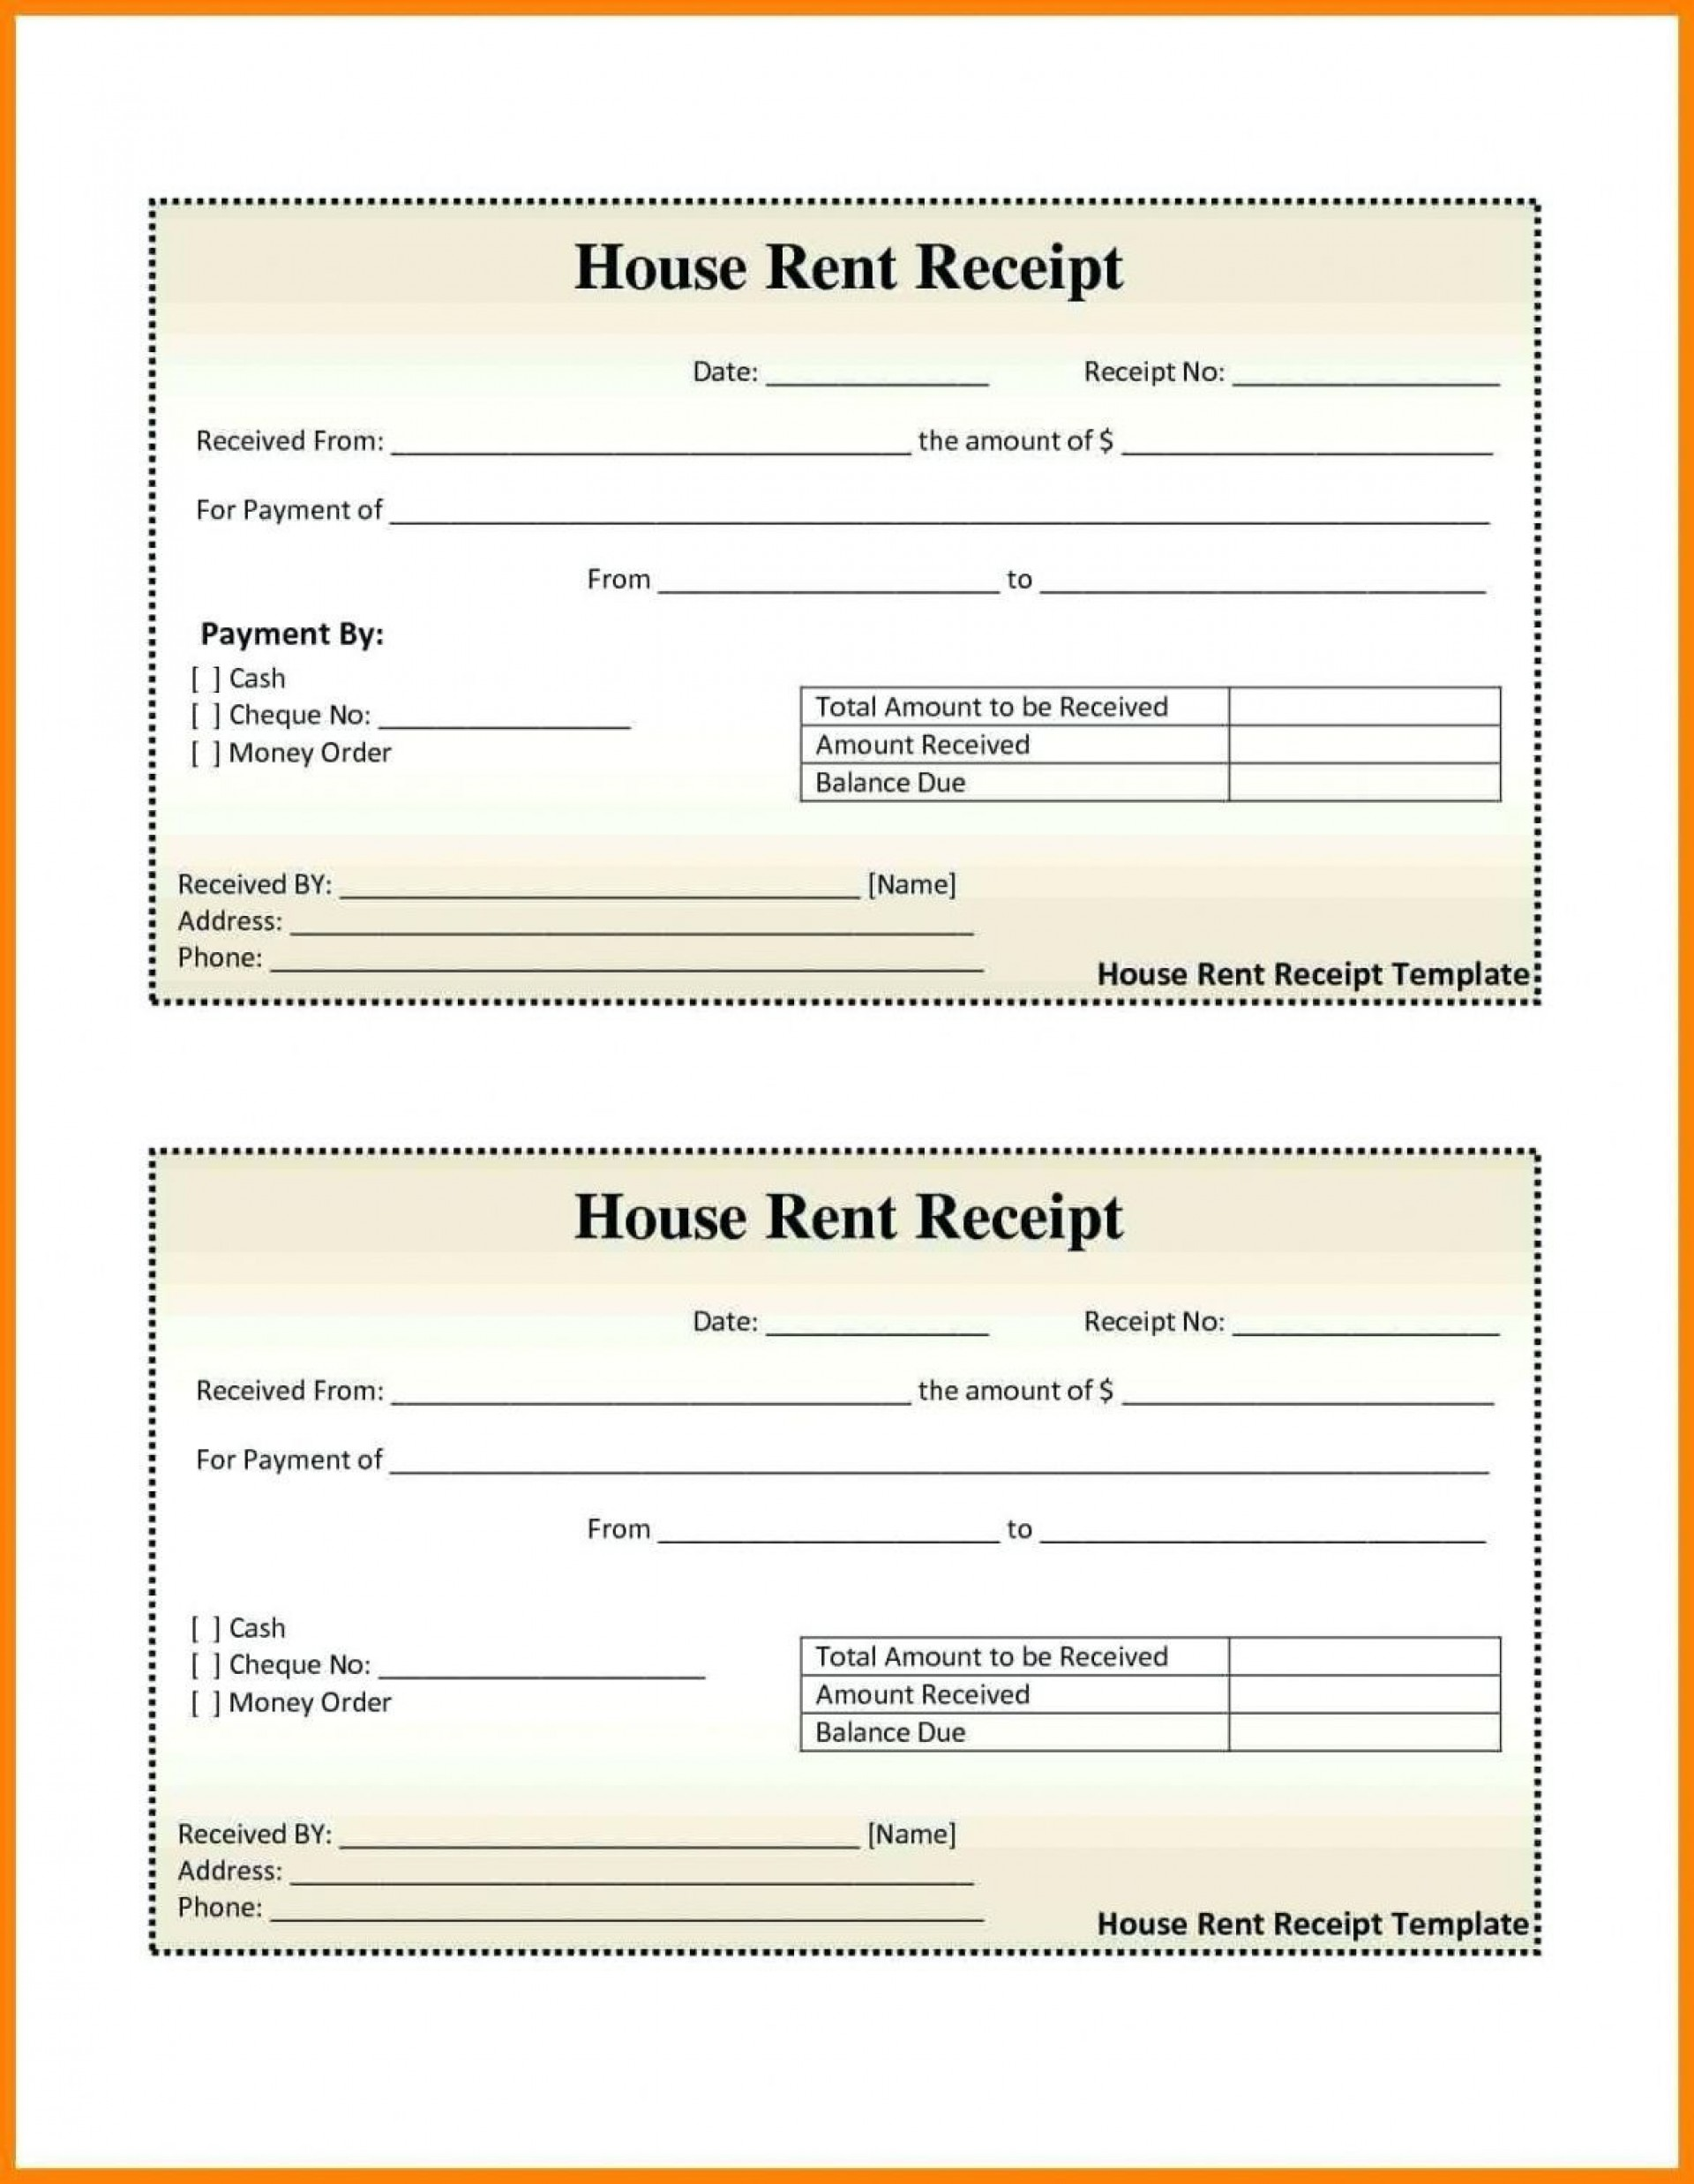 000 Excellent House Rent Receipt Sample Doc Photo  Format Download Bill Template India1920